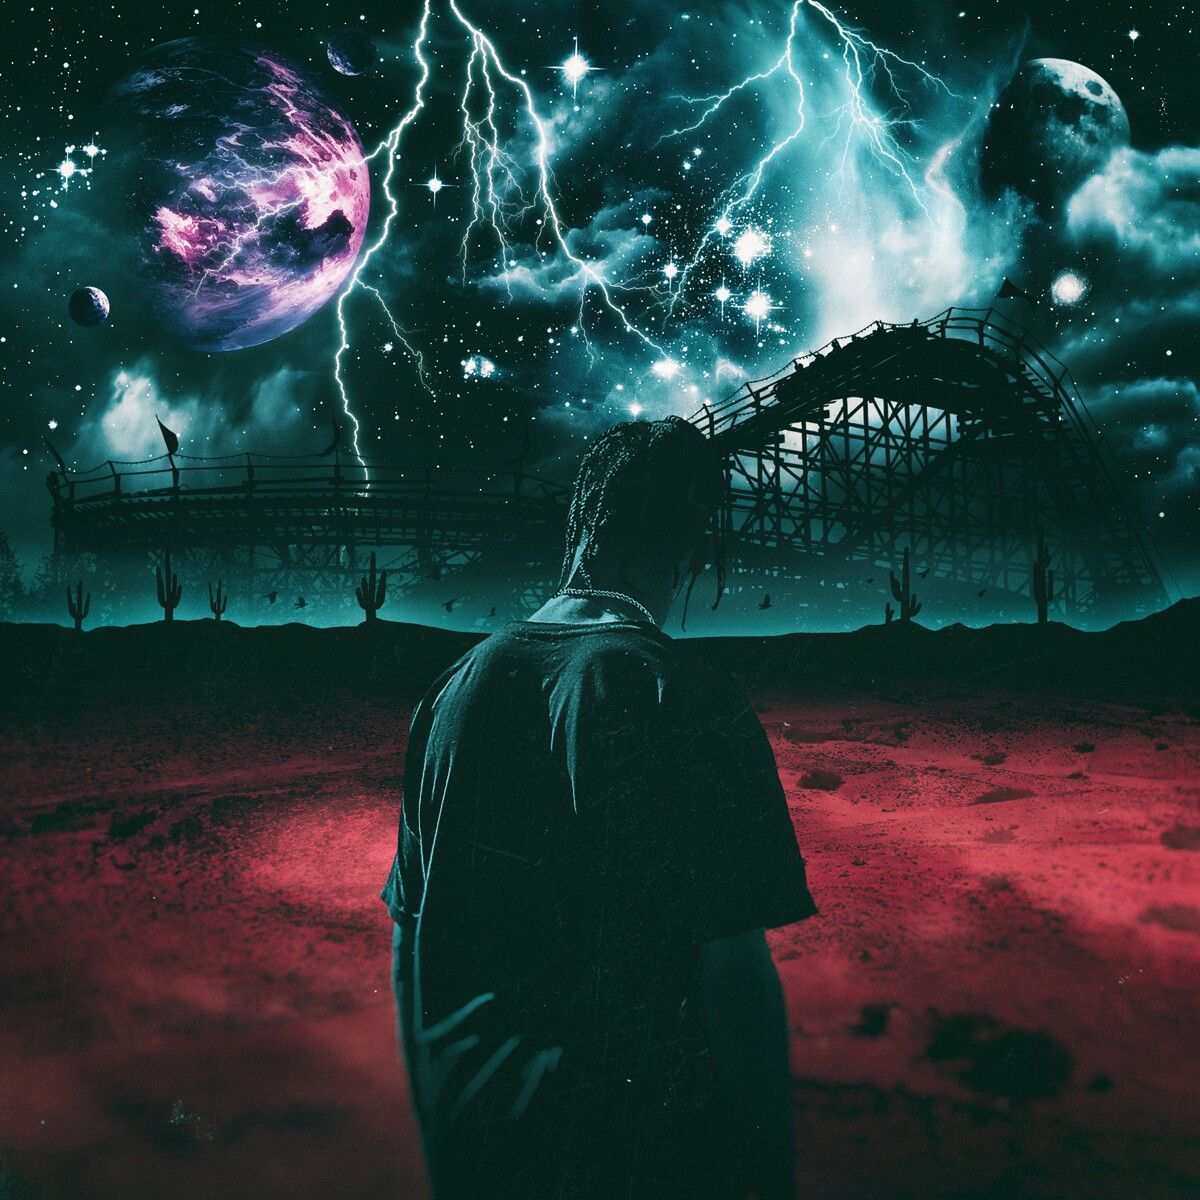 Travis Scott Astroworld Travis Scott Wallpapers Travis Scott Astroworld Travis Scott Art